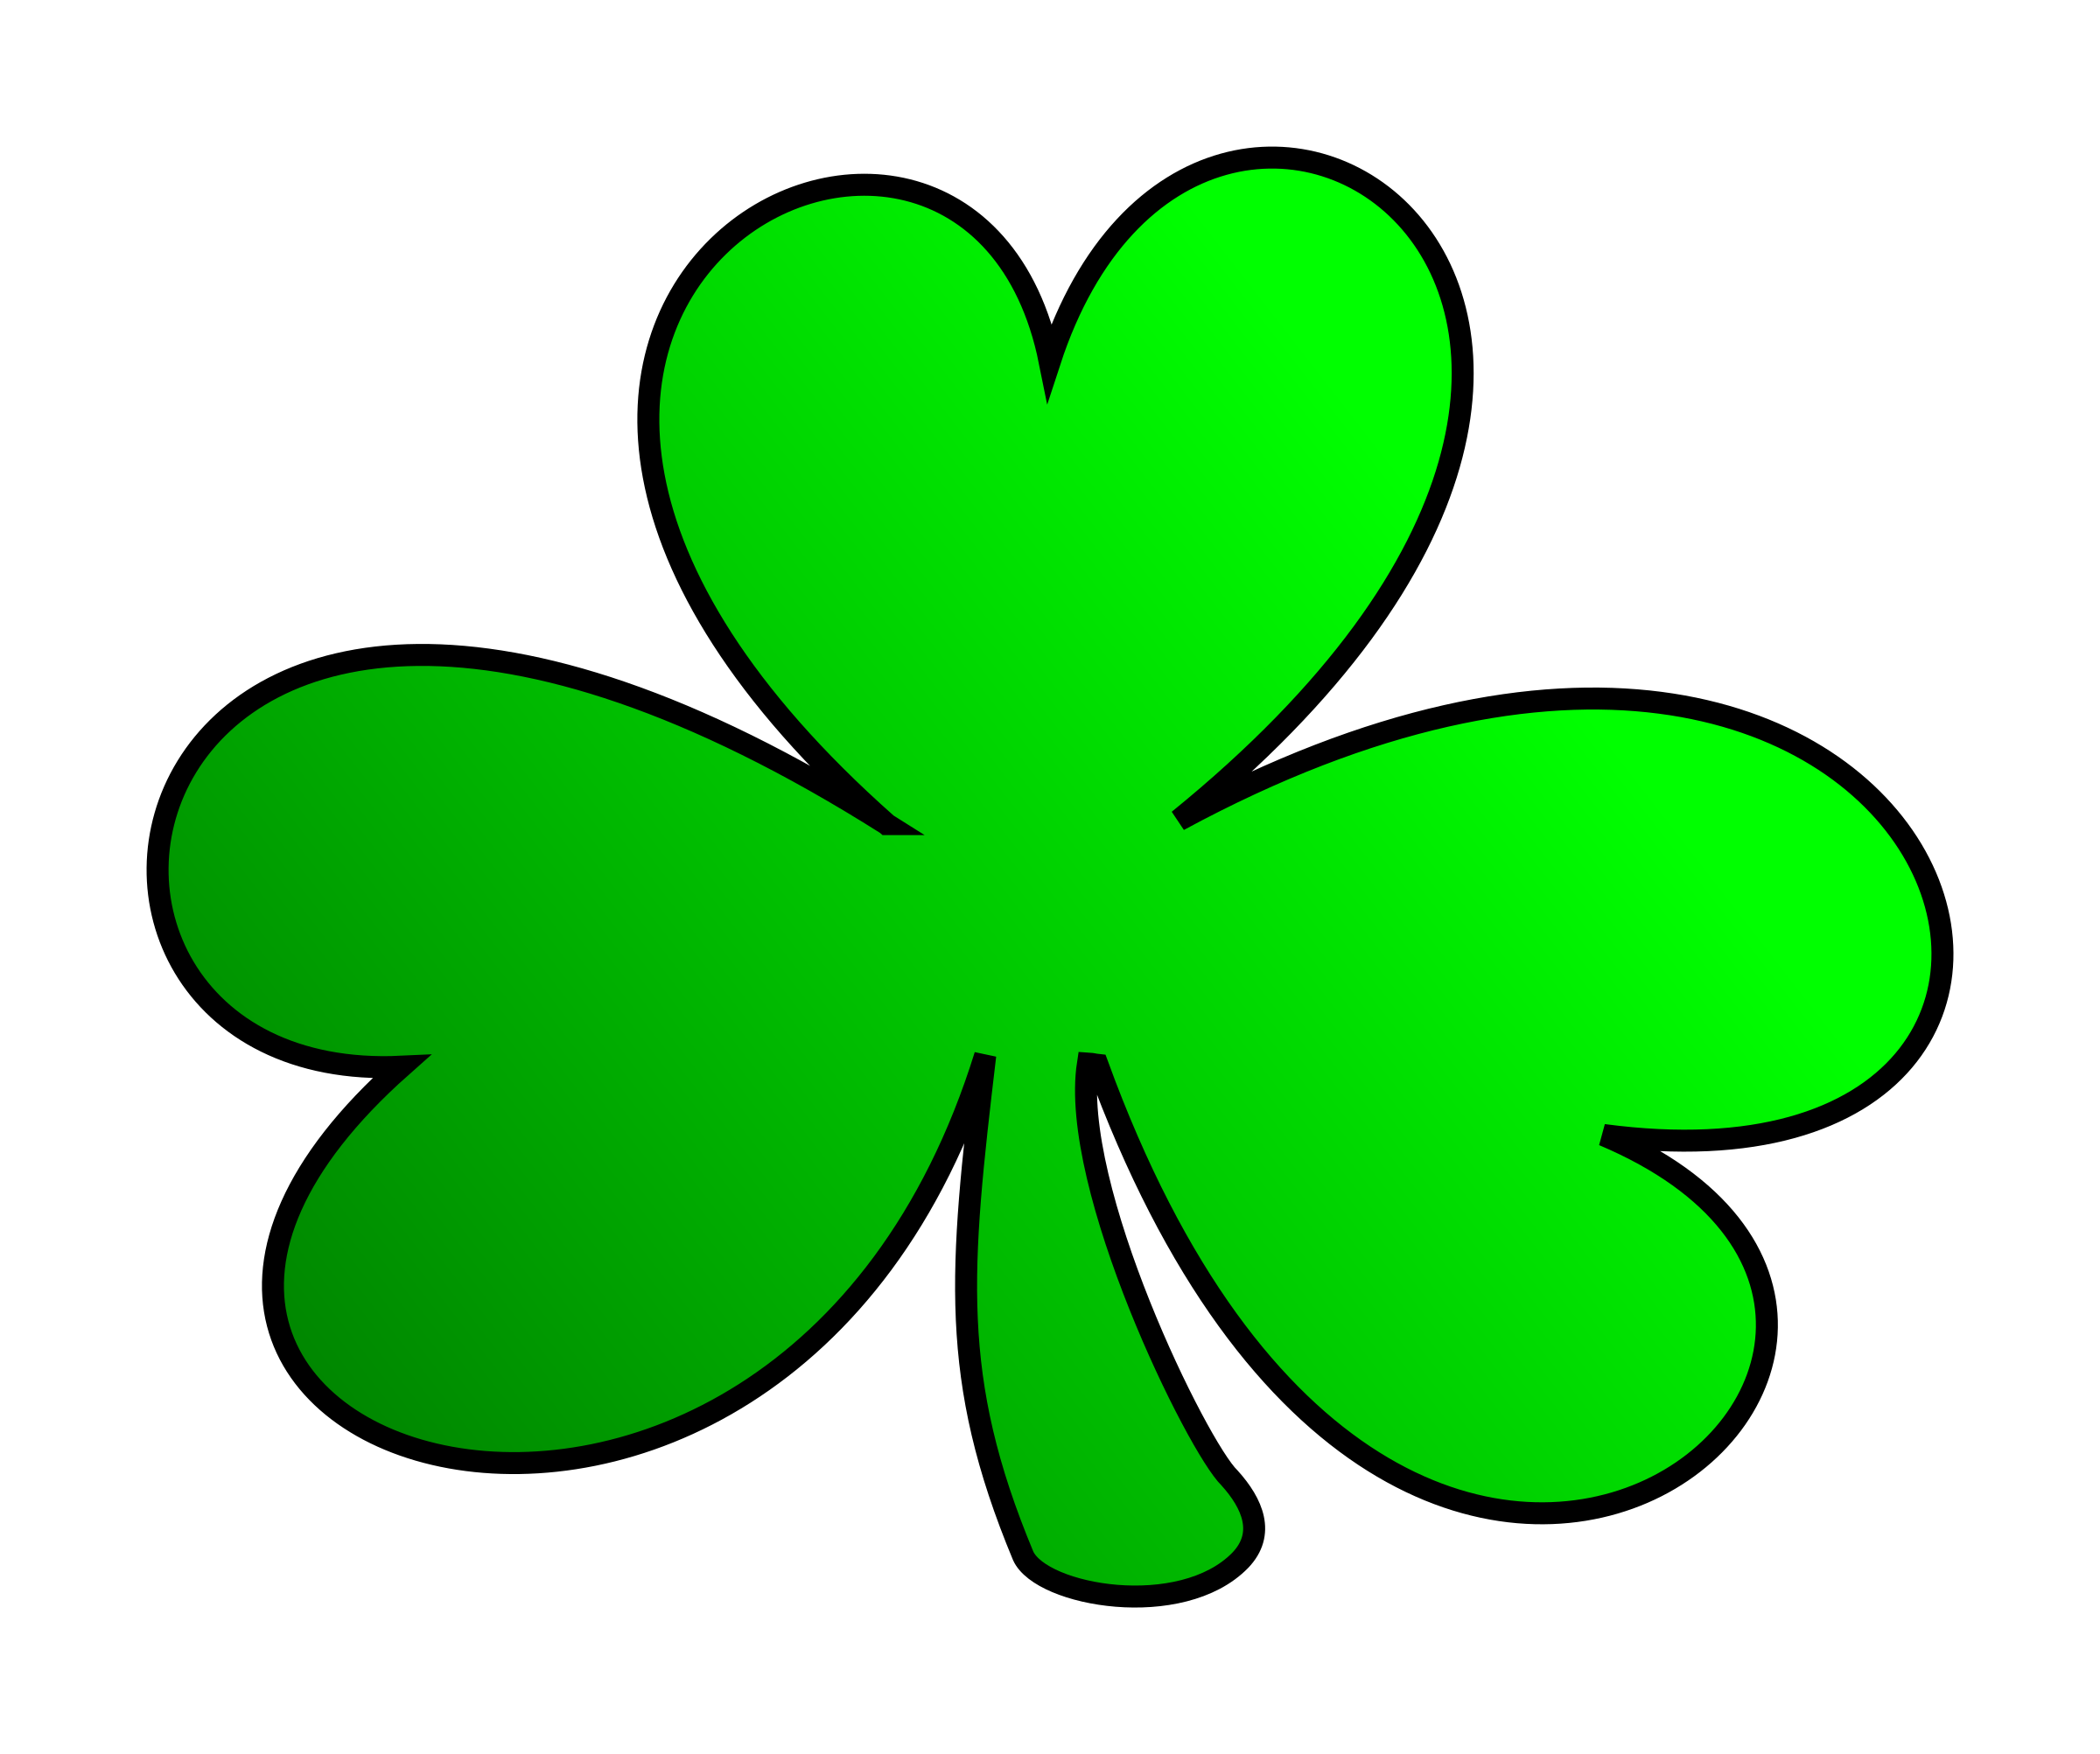 Green shamrock icons png. Clover clipart clover patch banner black and white library